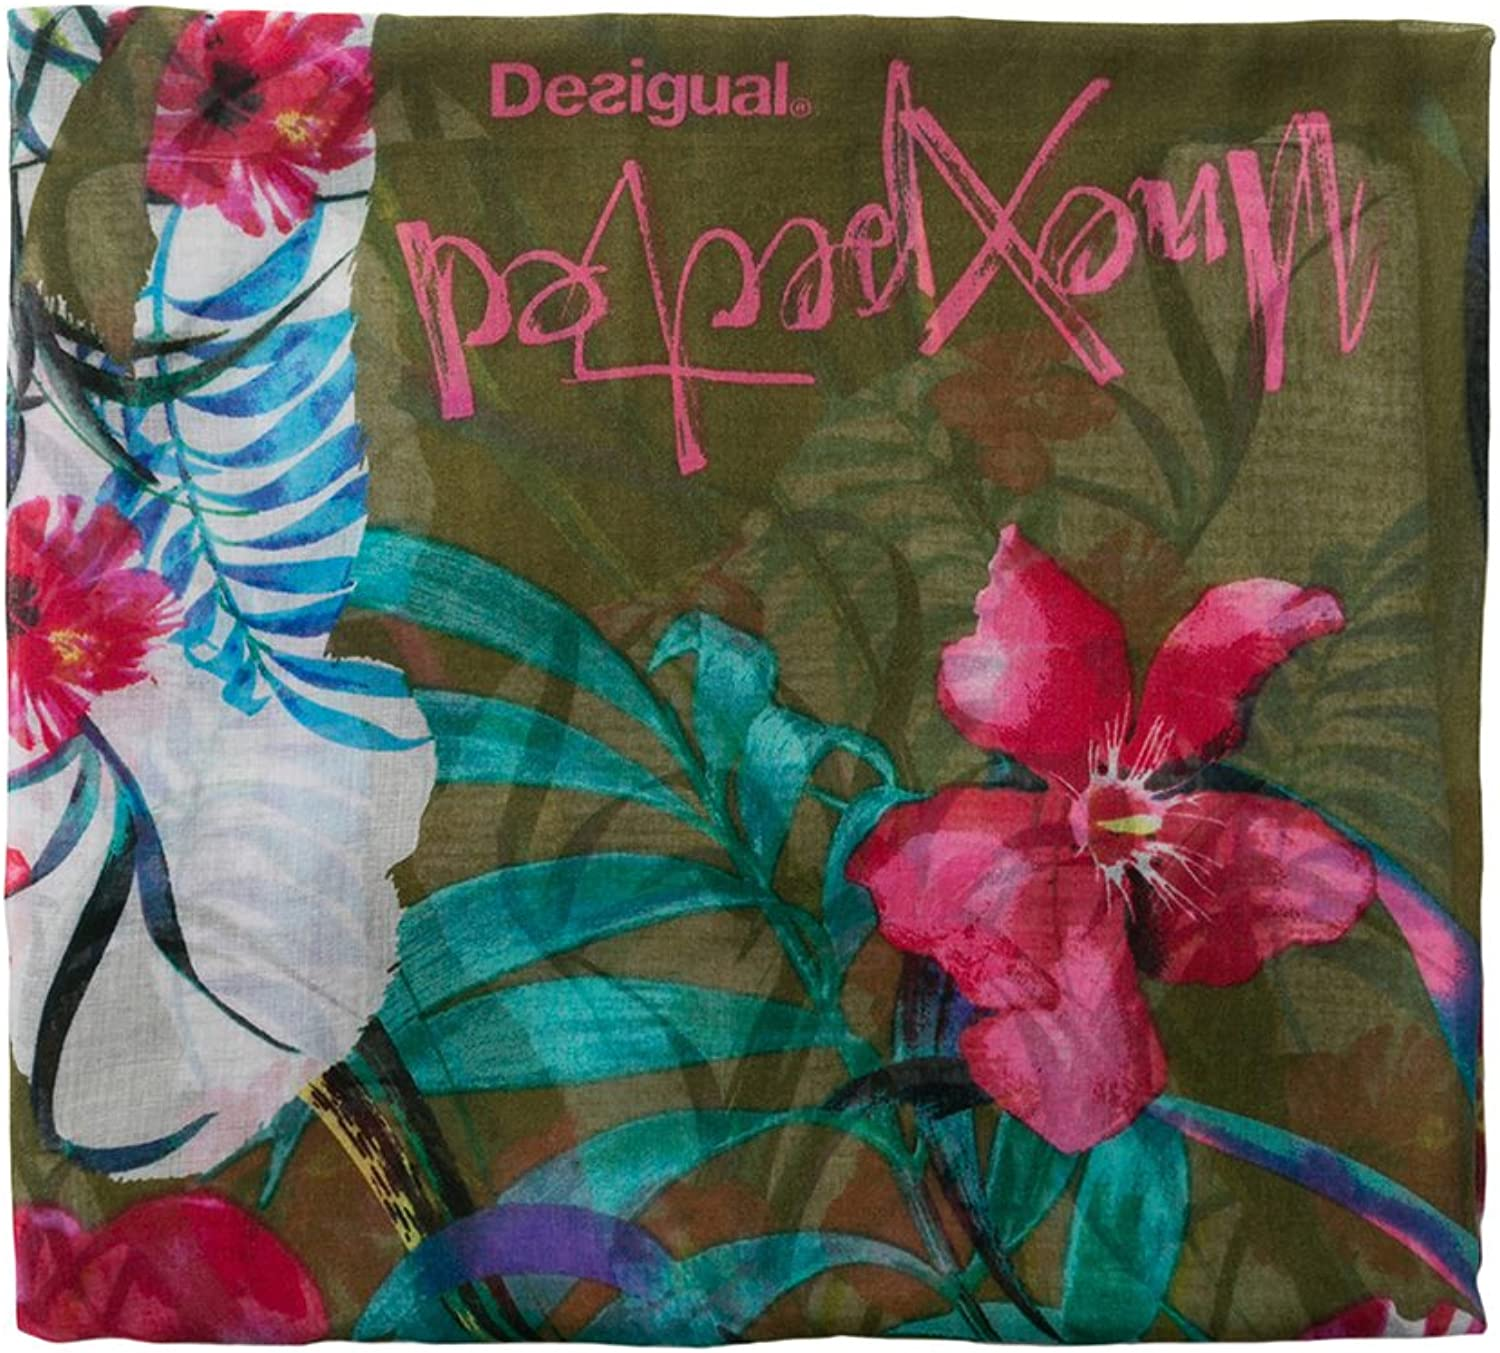 Desigual womens Gardenette Rectangle Flower Print Foulard Scarf Fashion Scarf